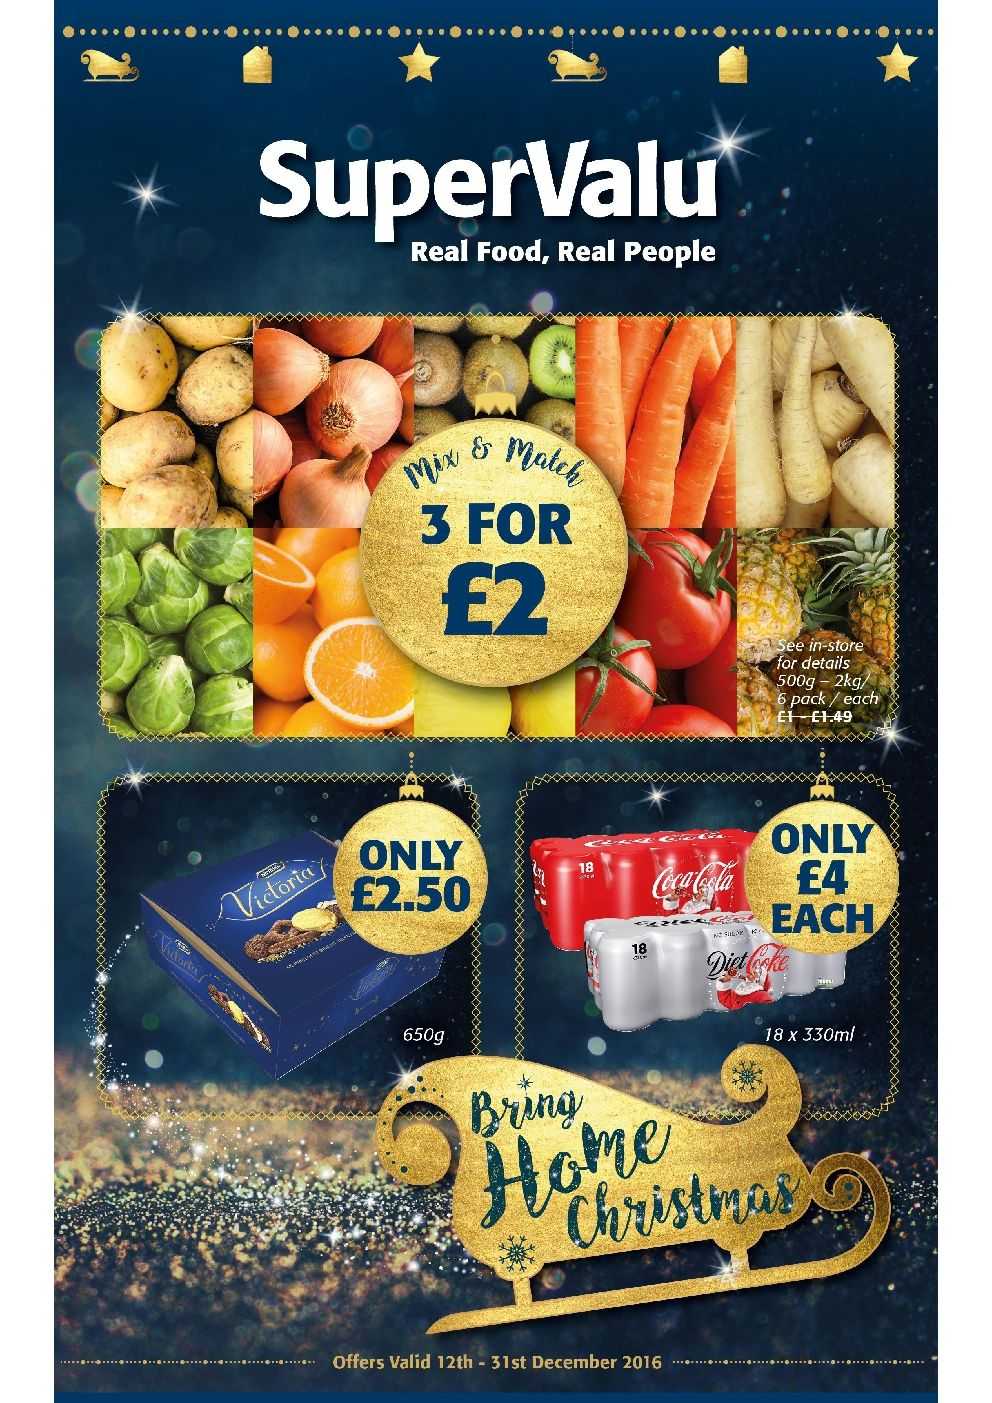 SuperValu Offers 12th 31st December 2016 http//www